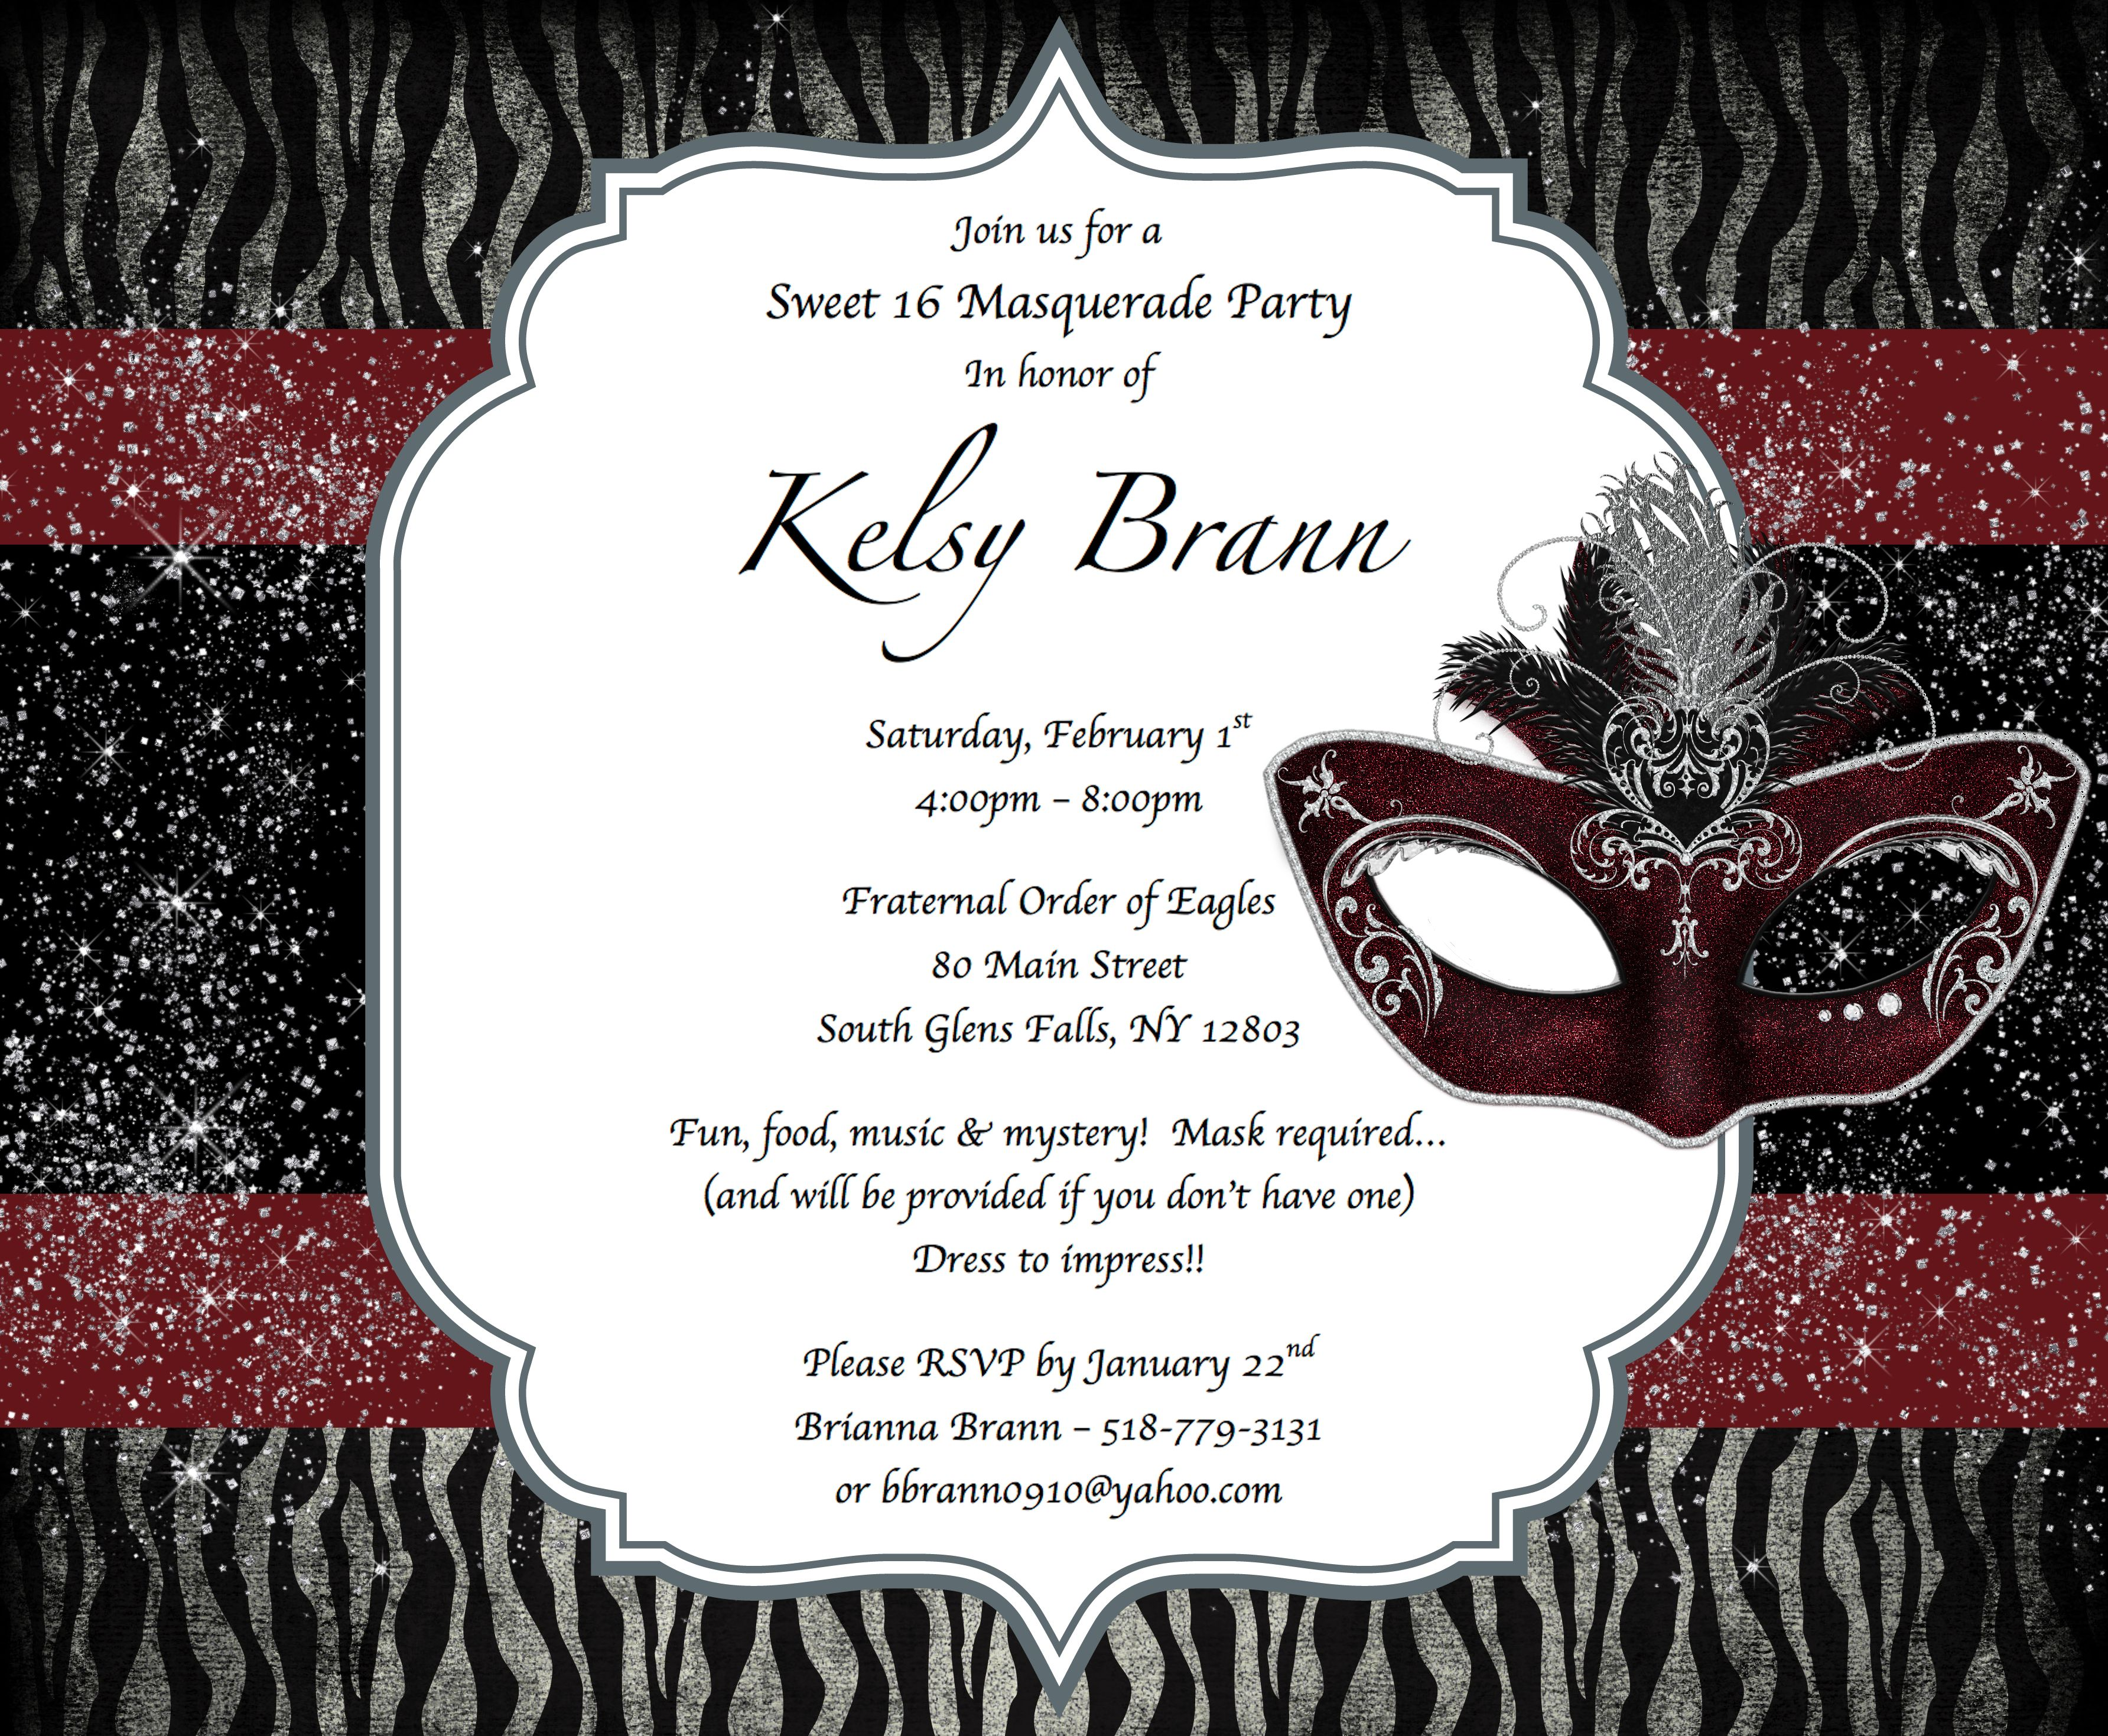 sweet 16 masquerade party invitations kelsys sweet 16